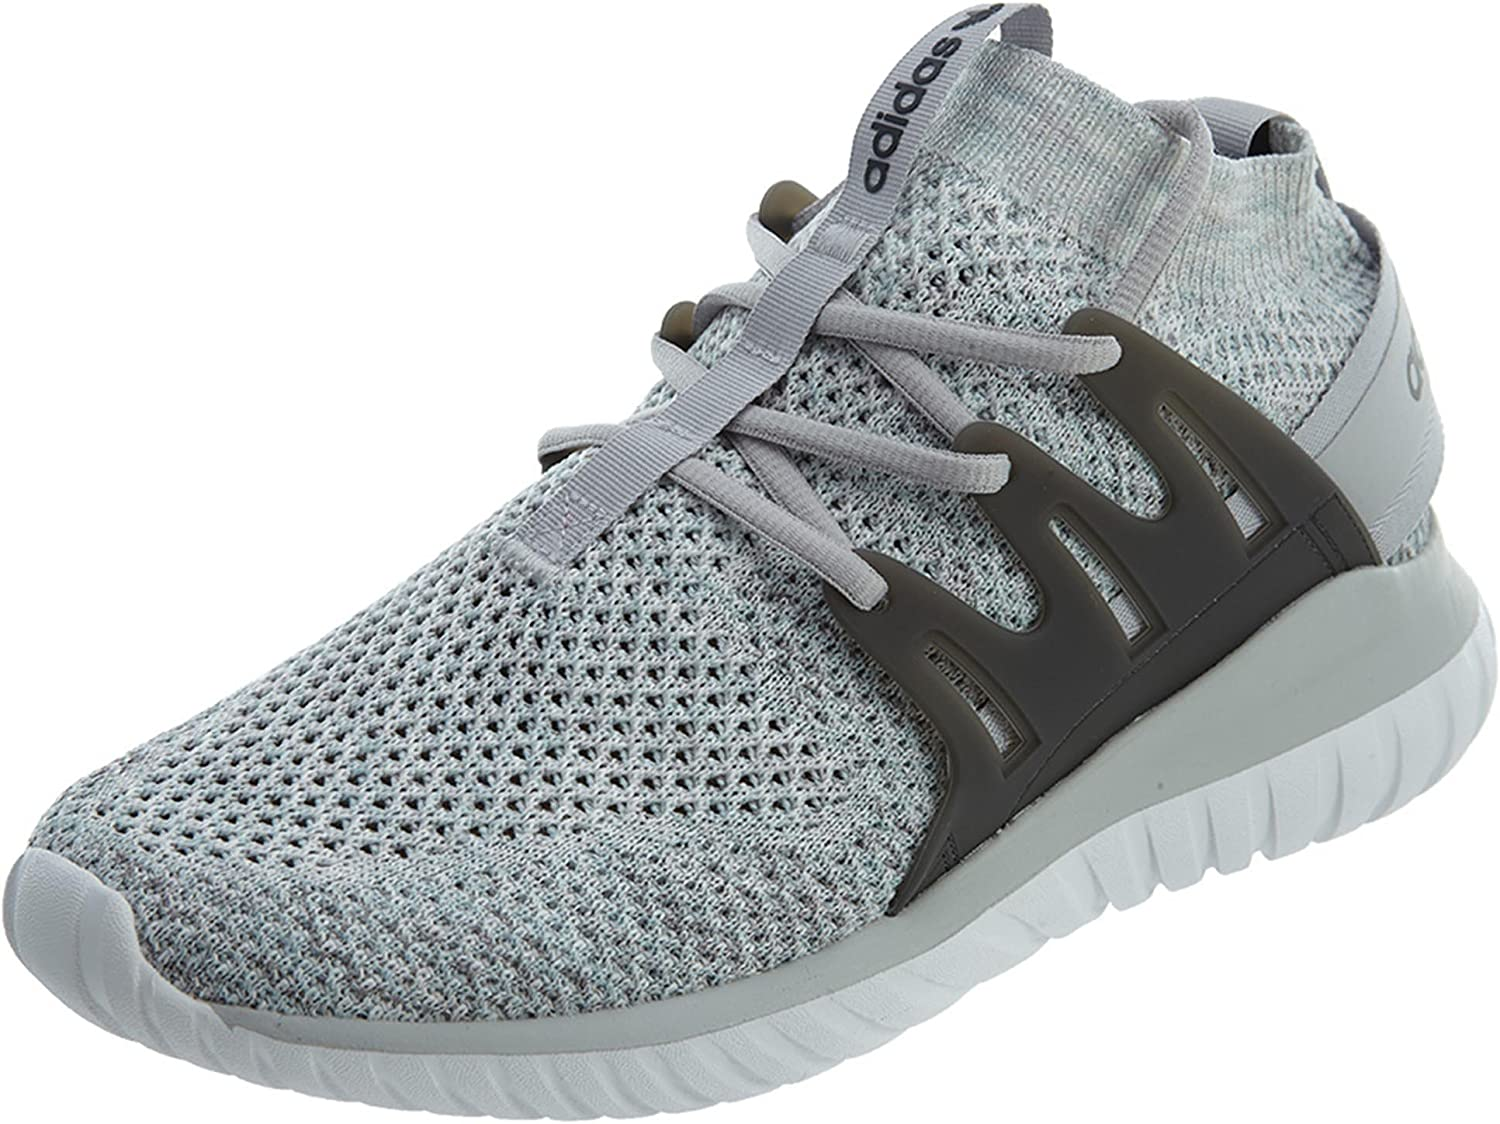 adidas Men s Tubular Nova Pk Originals Running Shoe